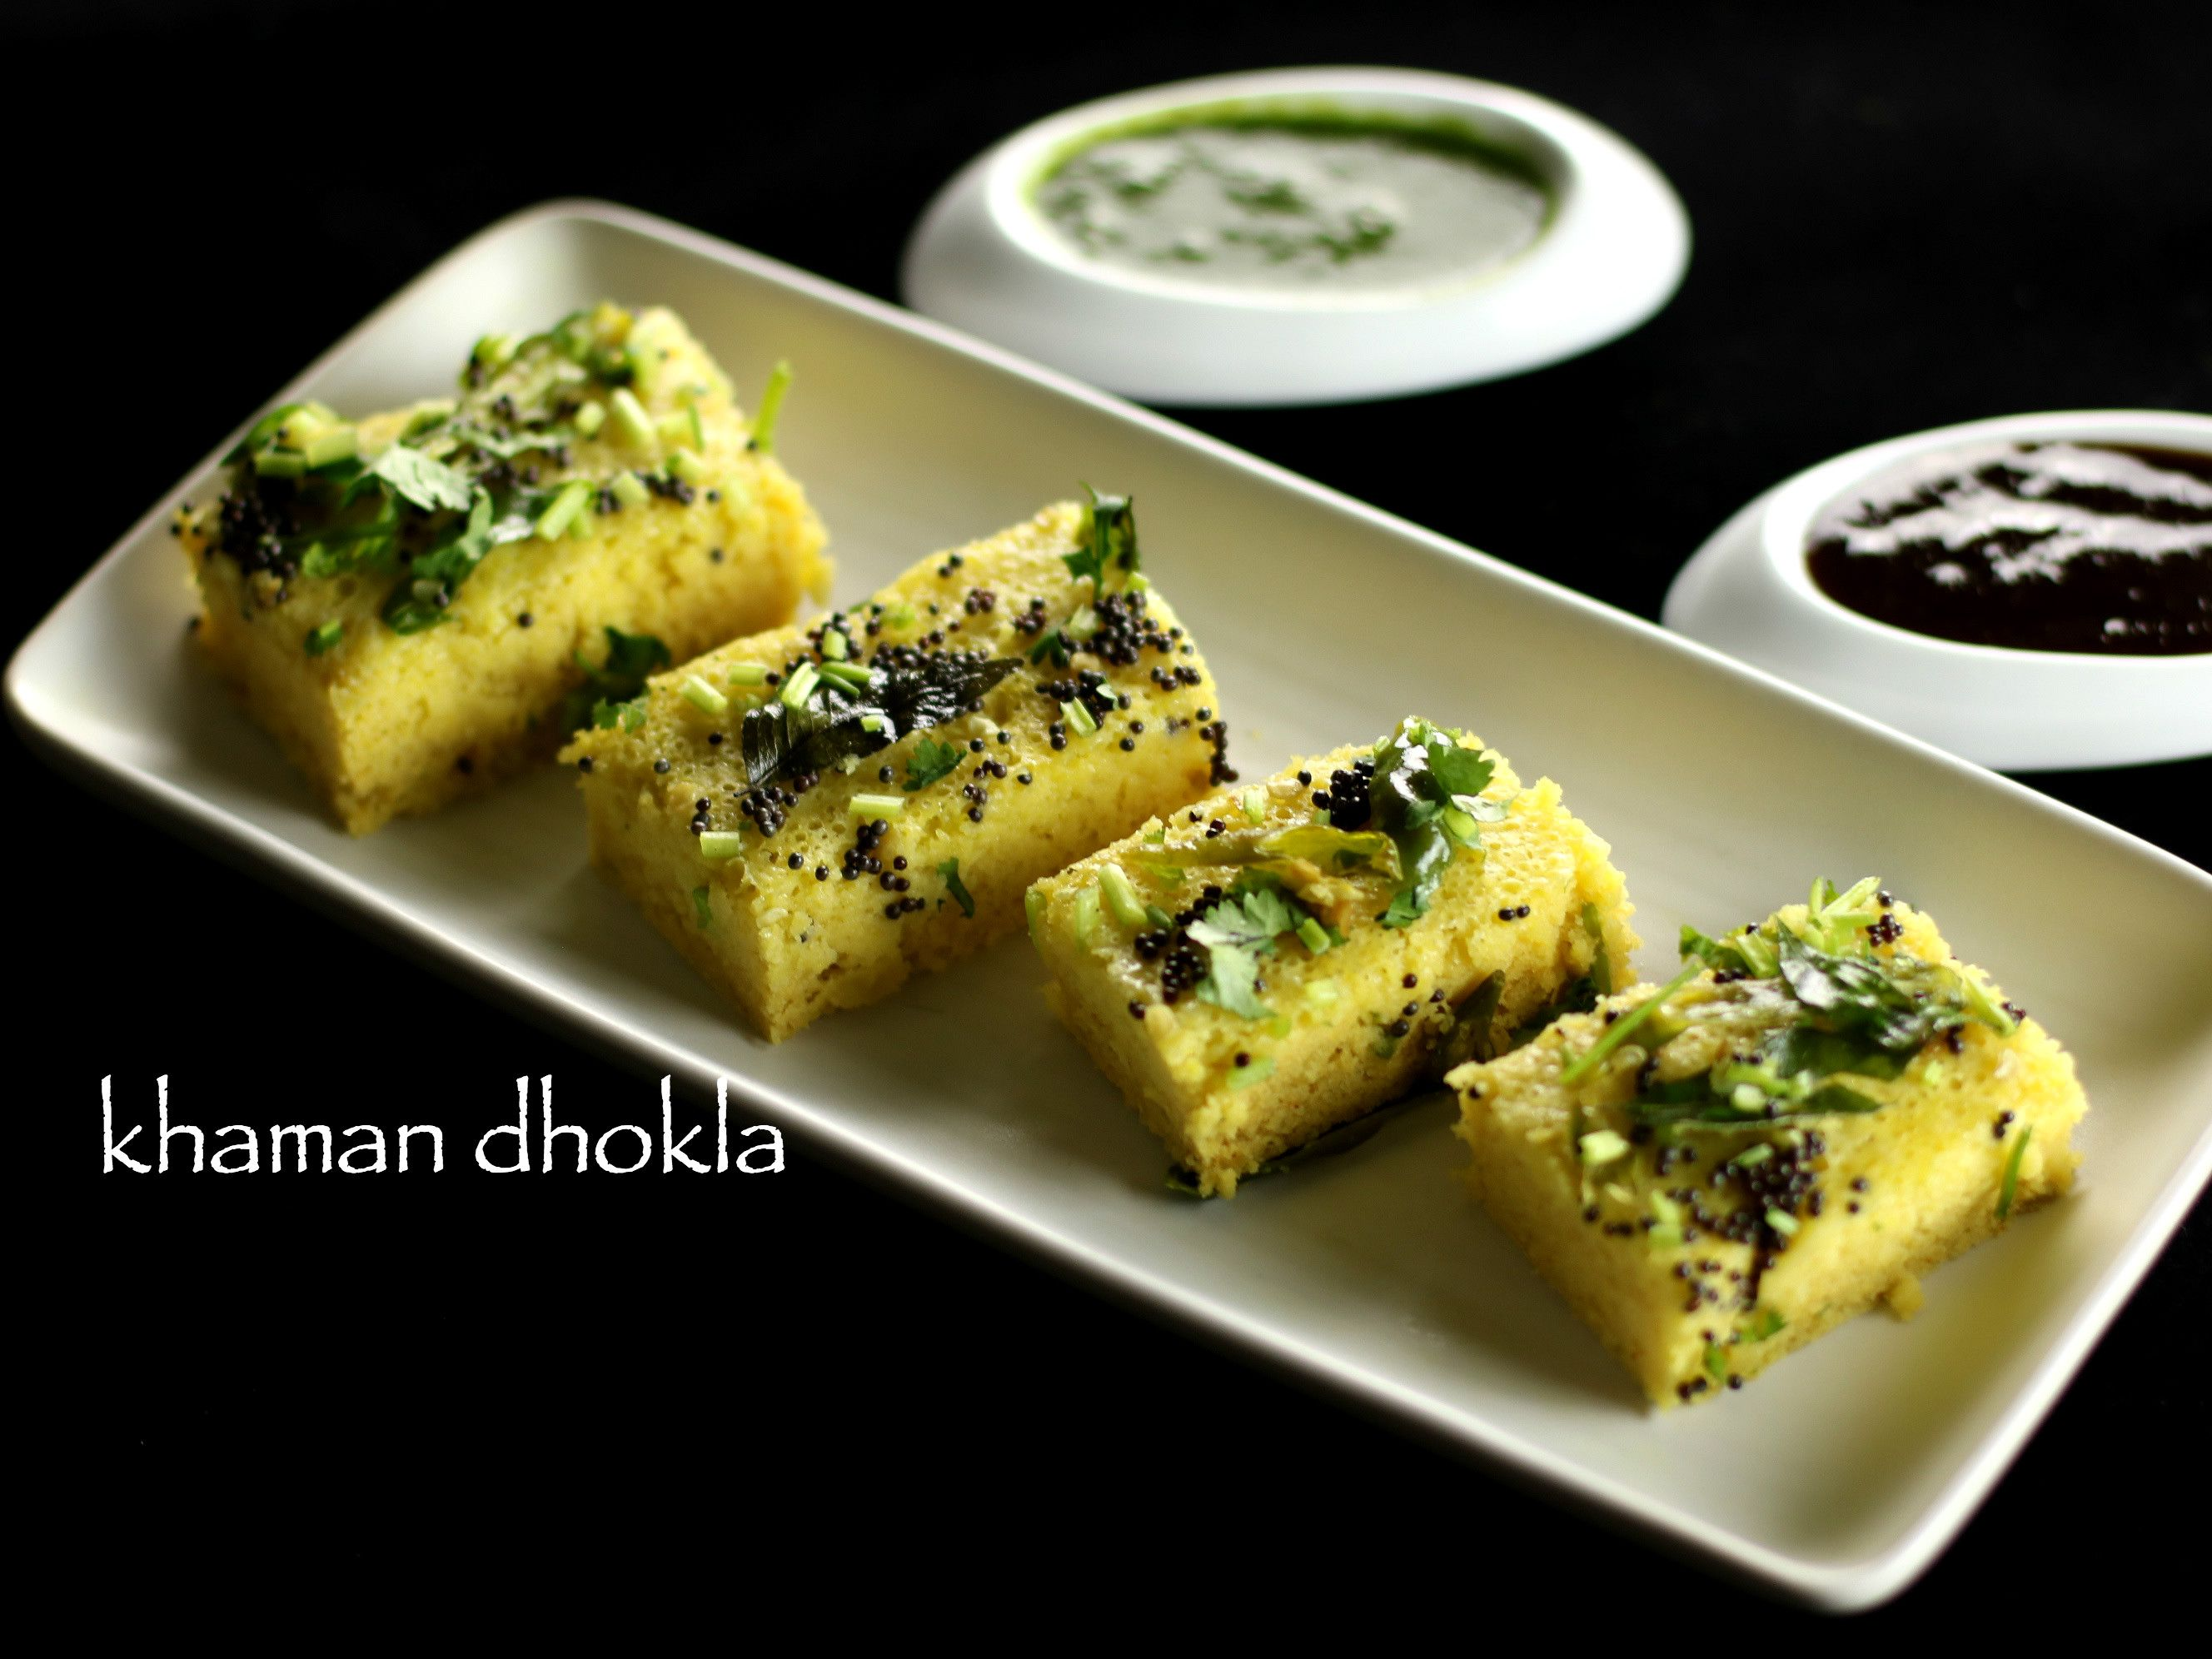 Khaman dhokla recipe besan ka dhokla recipe step by step photo khaman dhokla recipe besan ka dhokla recipe step by step photo and video recipe it is a famous snack sold in every street of gujarat forumfinder Images